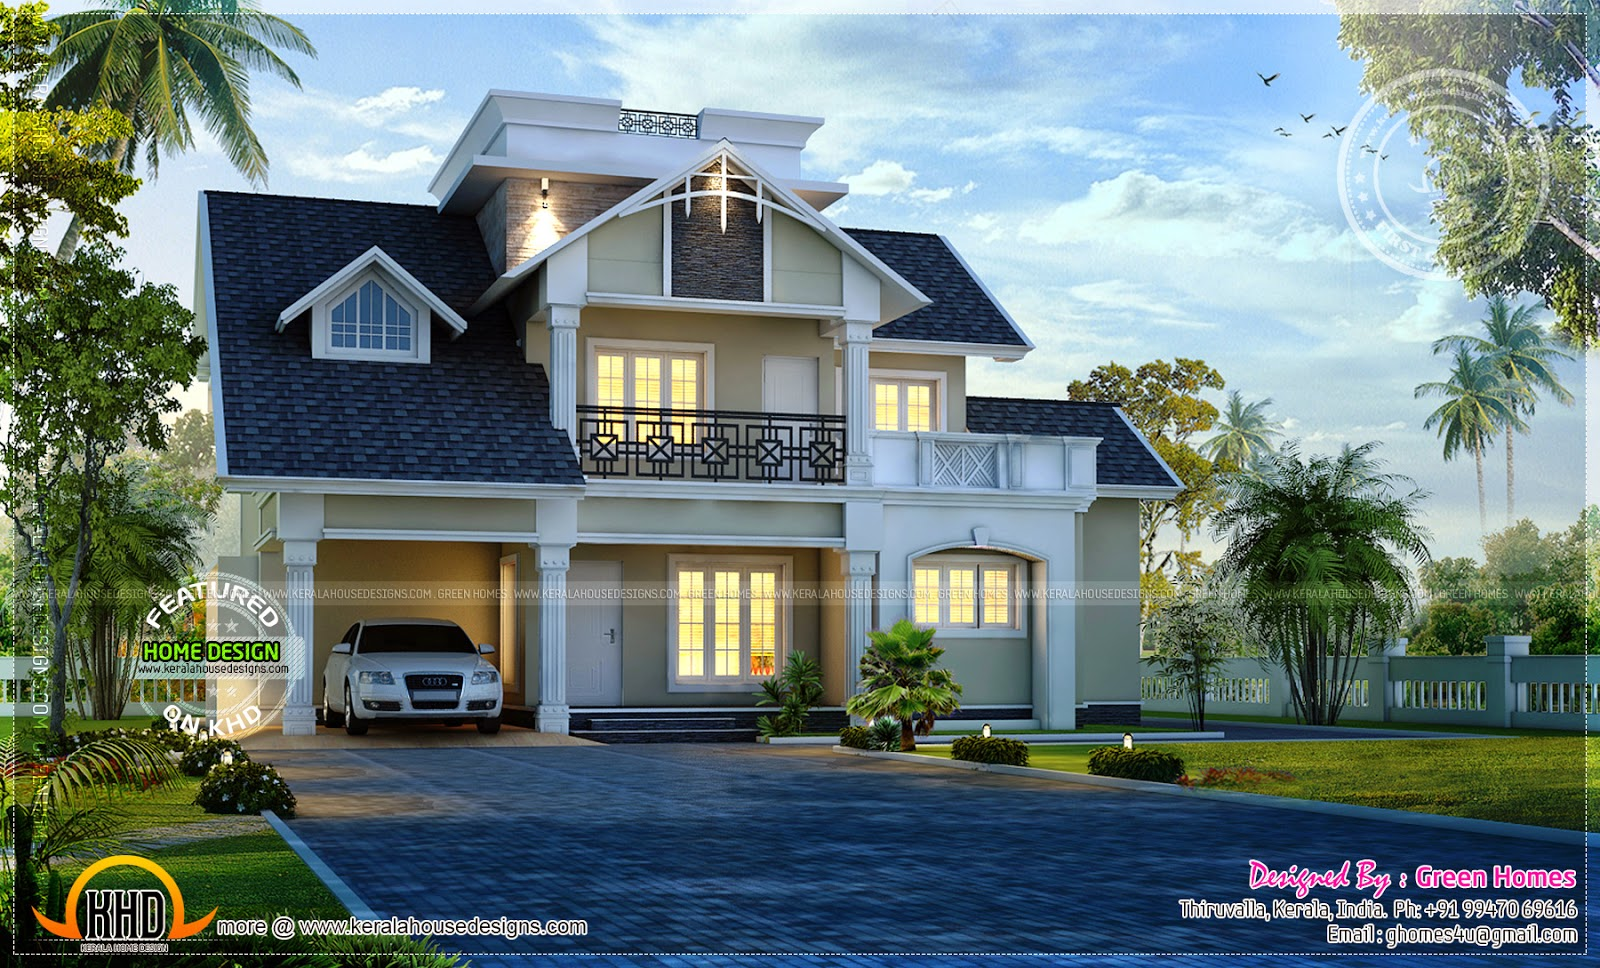 Awesome modern house exterior kerala home design and for New house design photos